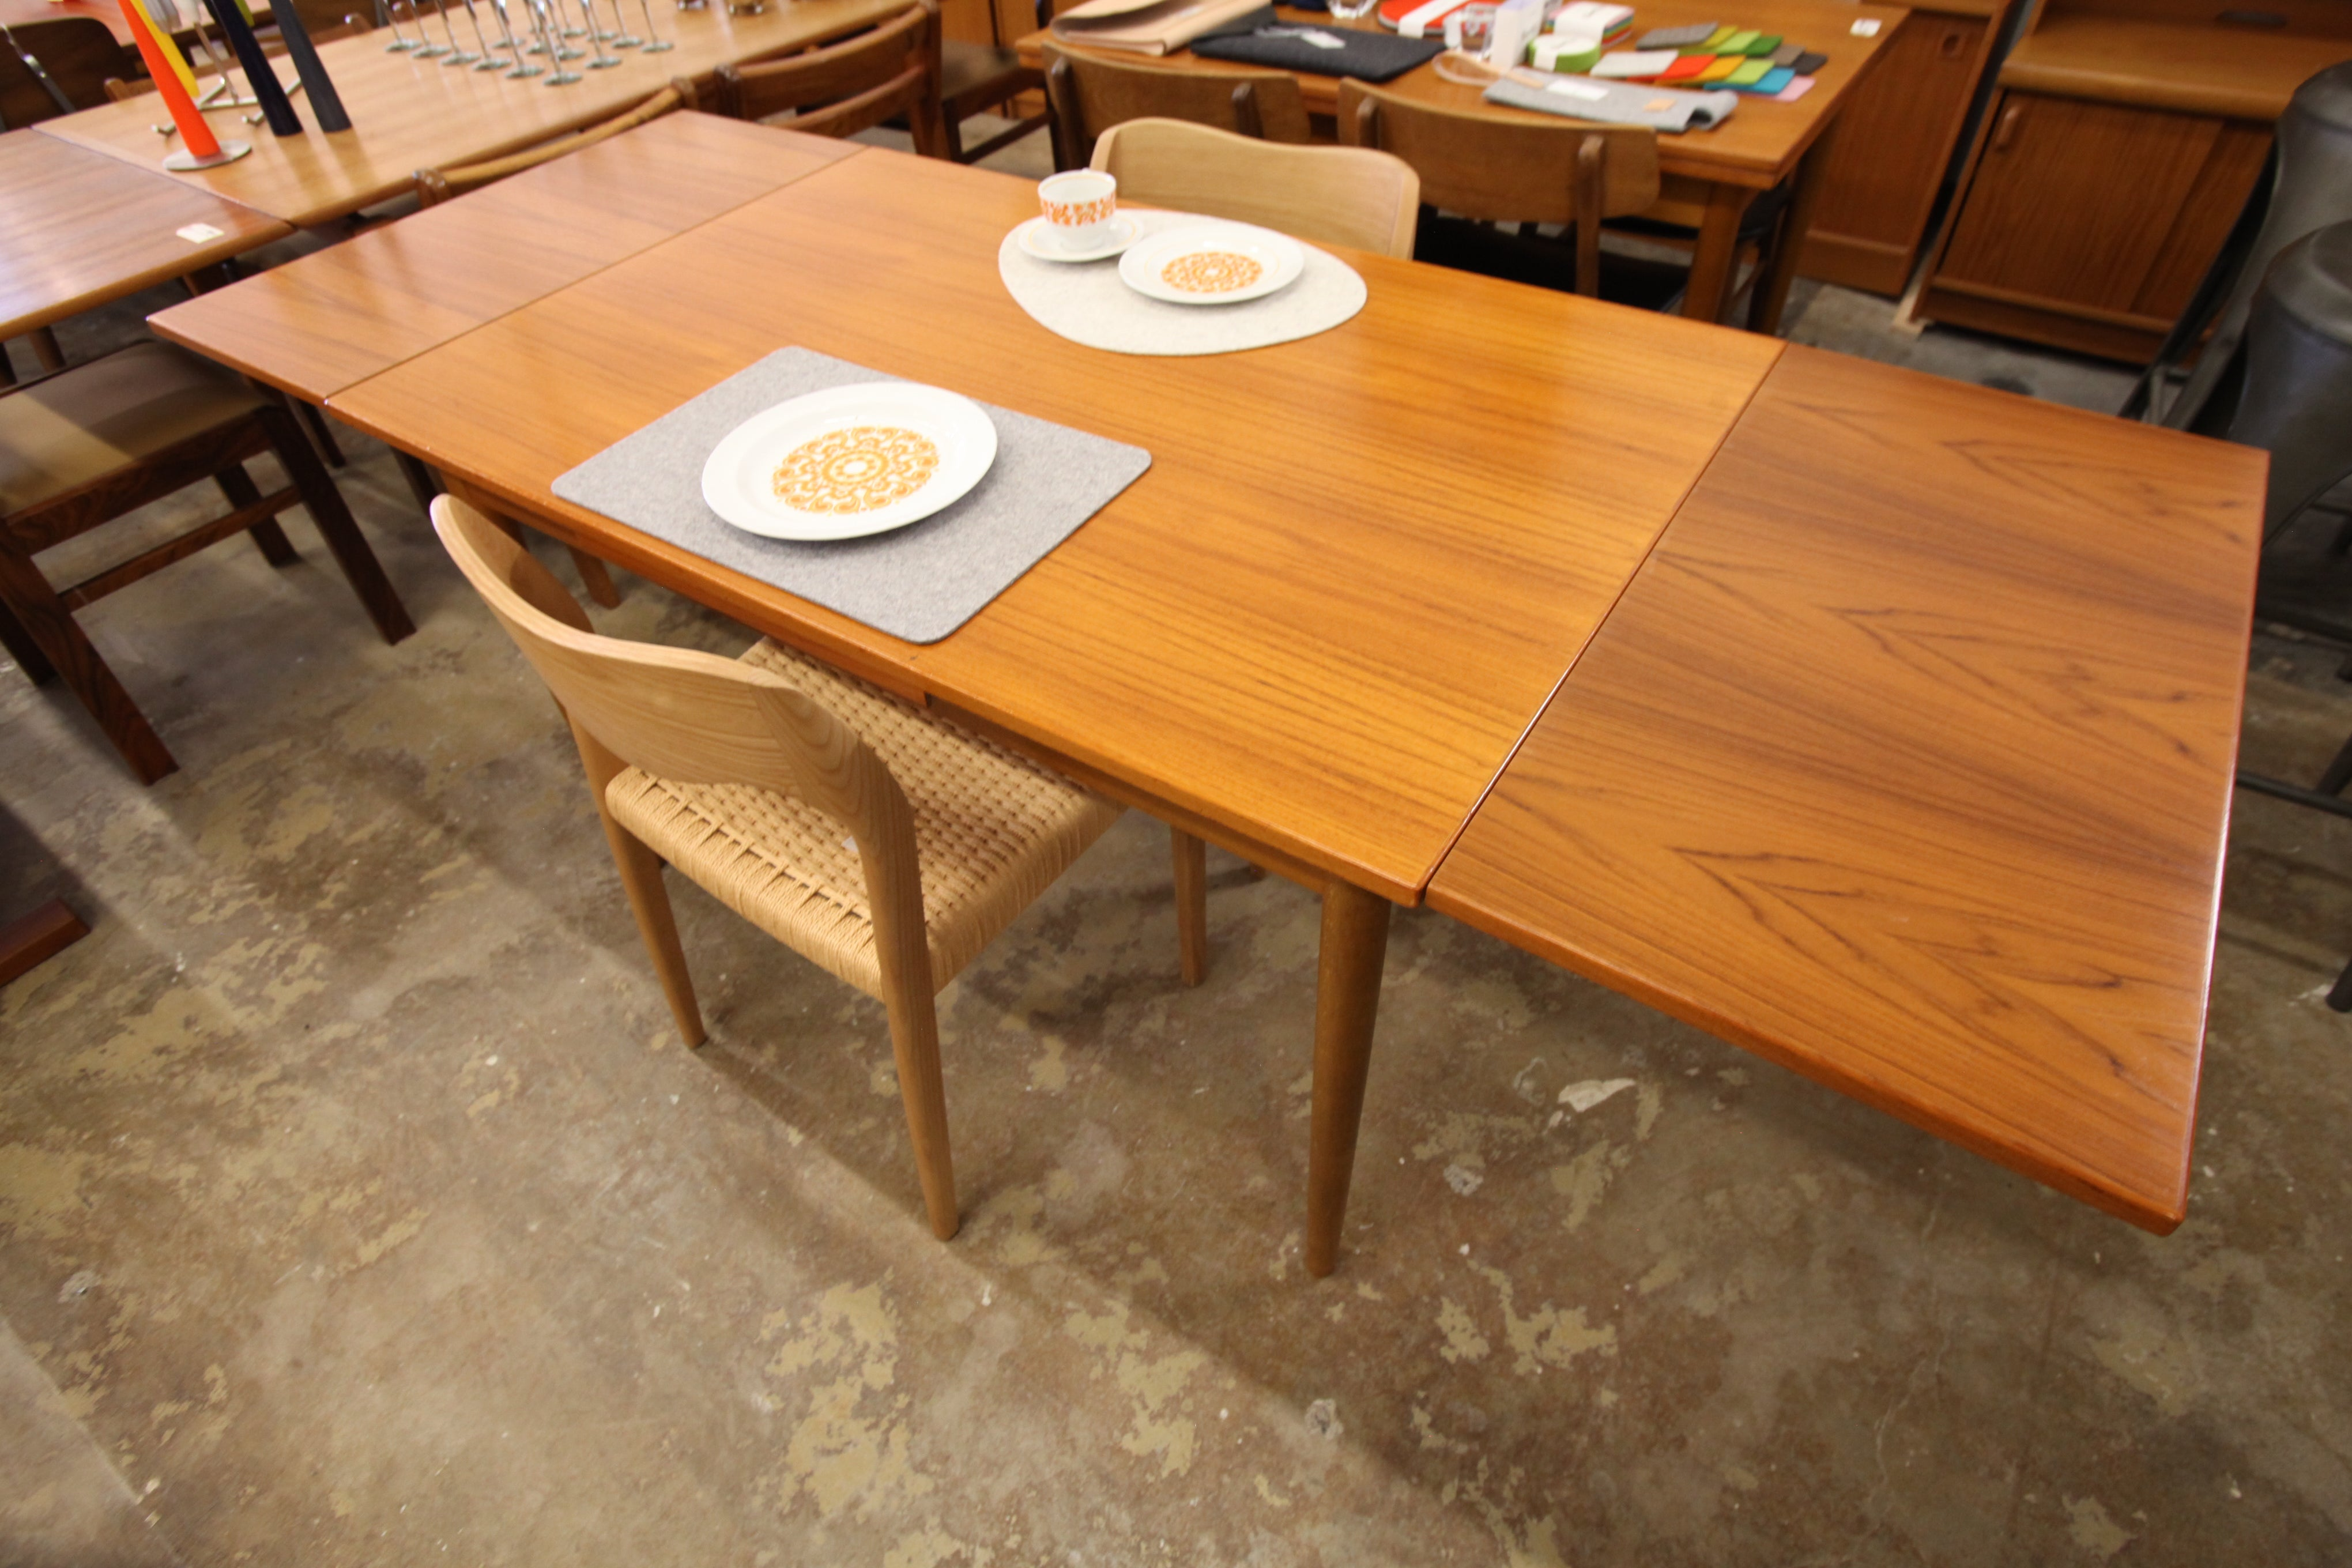 "Vintage Danish Teak Extension Dining Table by Farstrup (48""x32"") (79.25""x32"") 29""H"